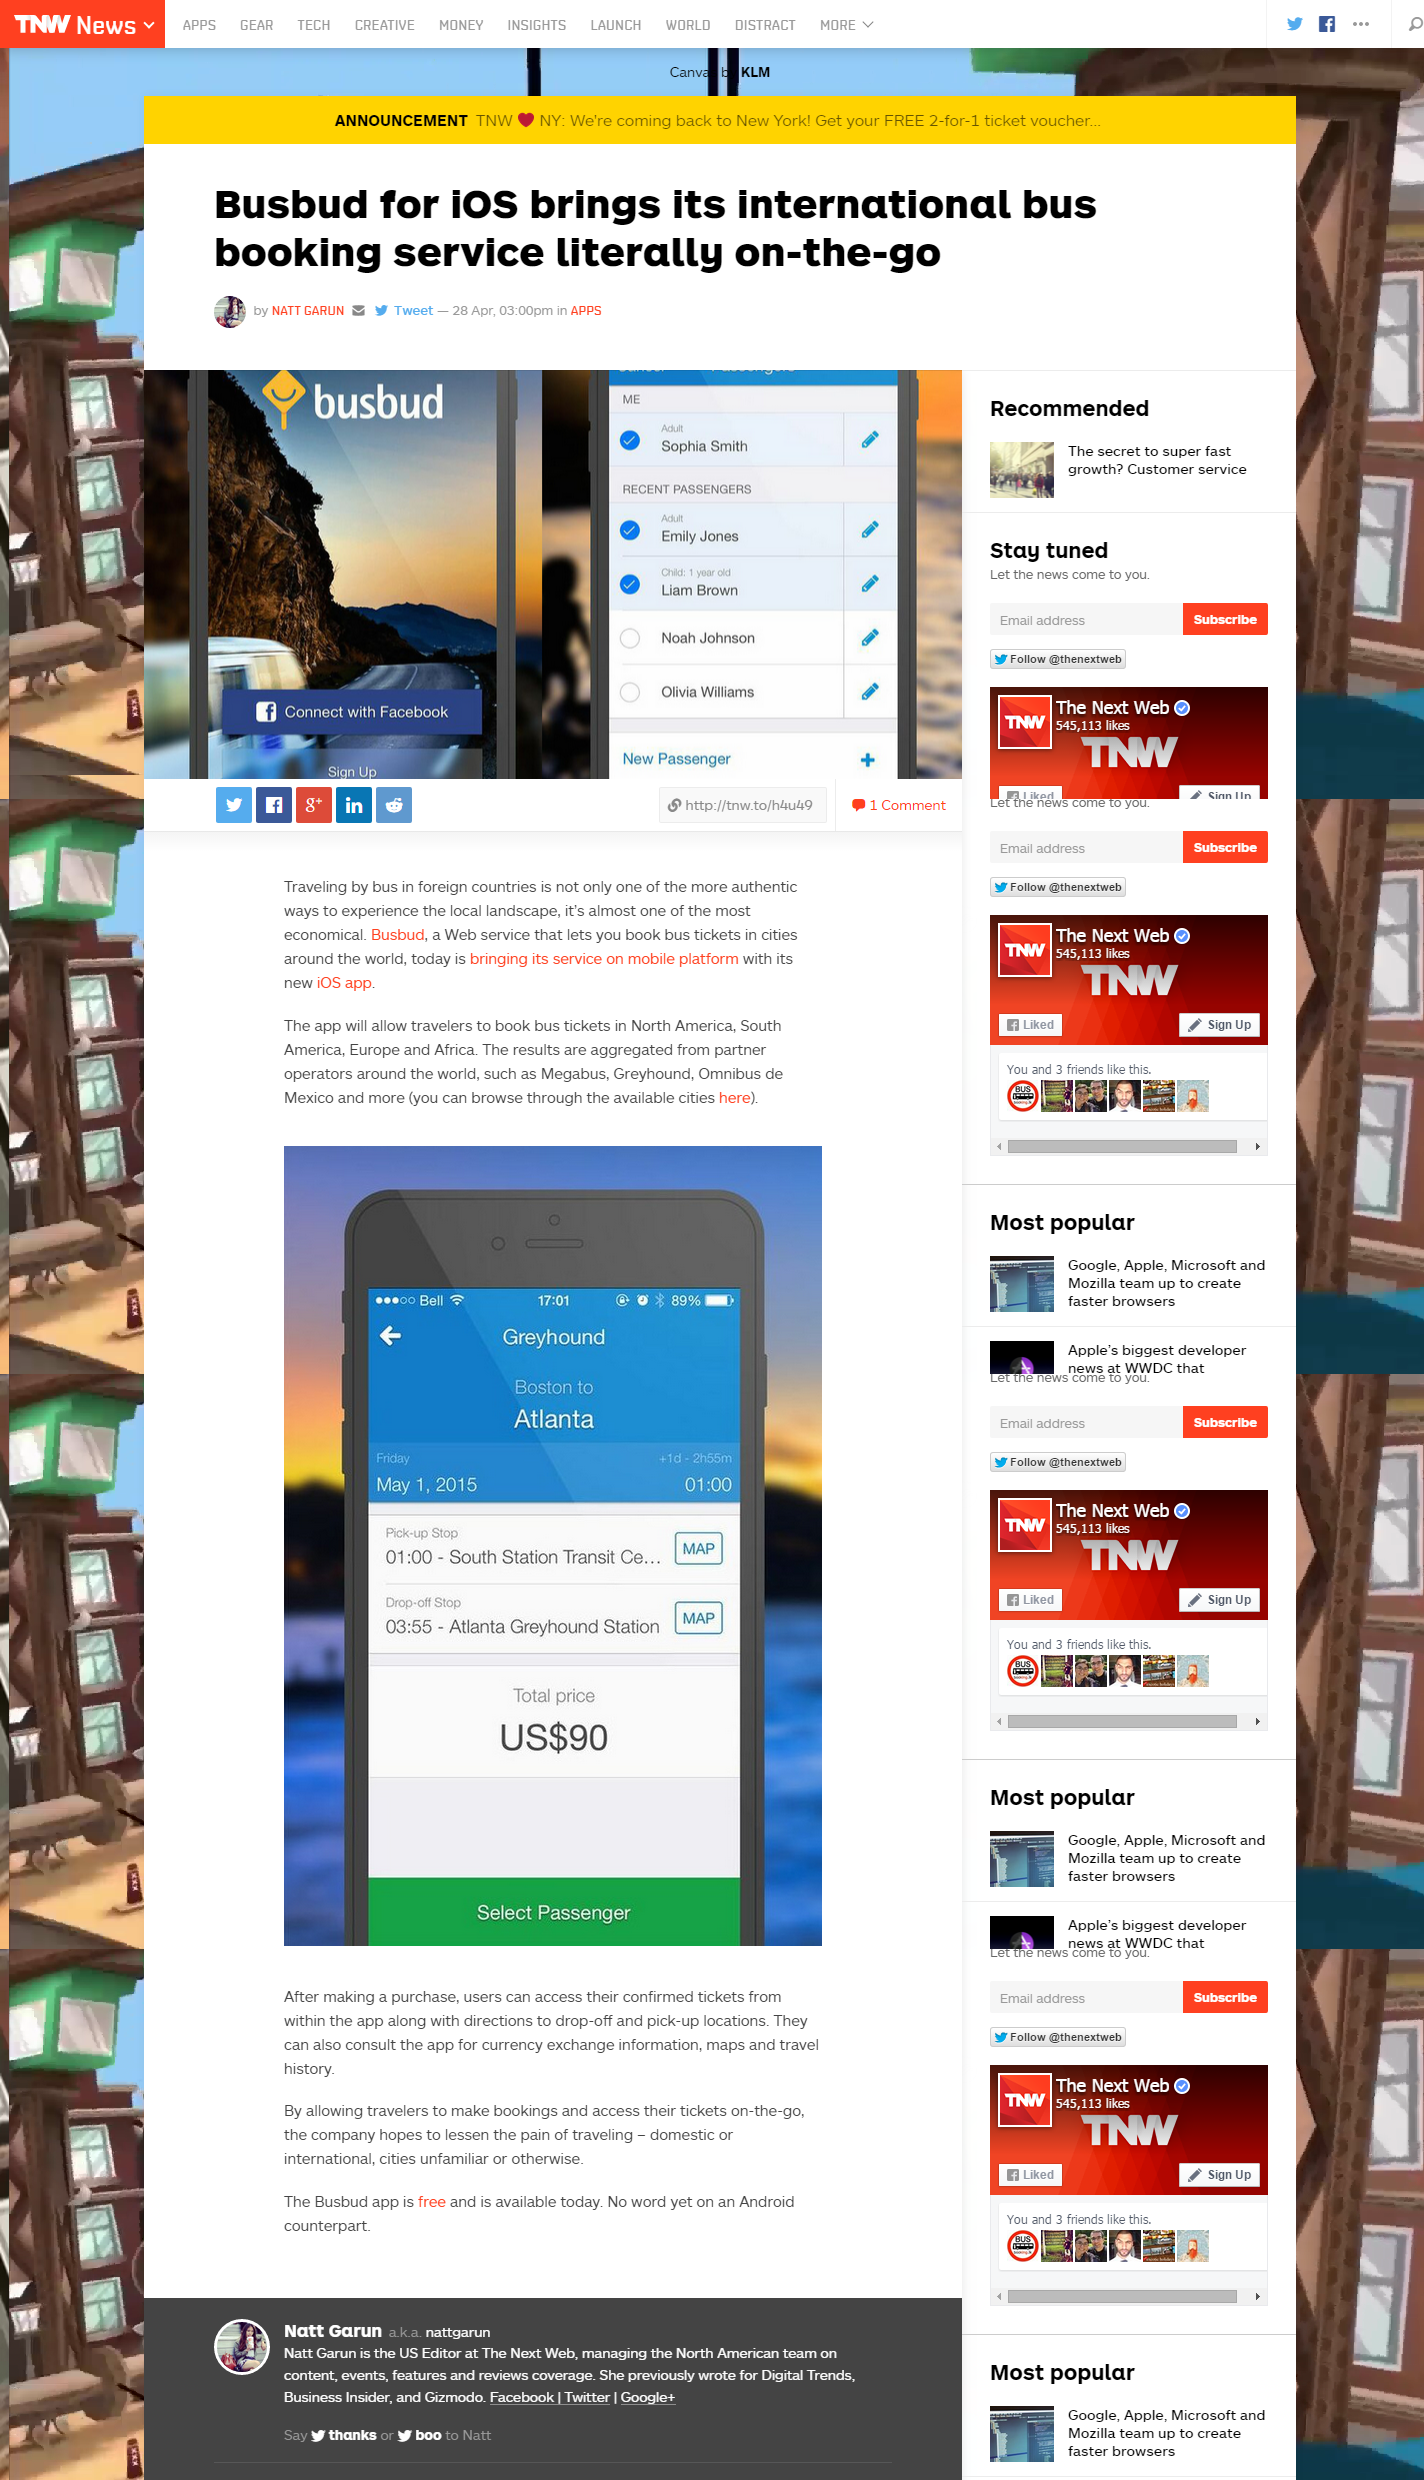 screencapture-thenextweb-com-apps-2015-04-28-busbud-for-ios-brings-its-international-bus-booking-service-literally-on-the-go-1434710988549